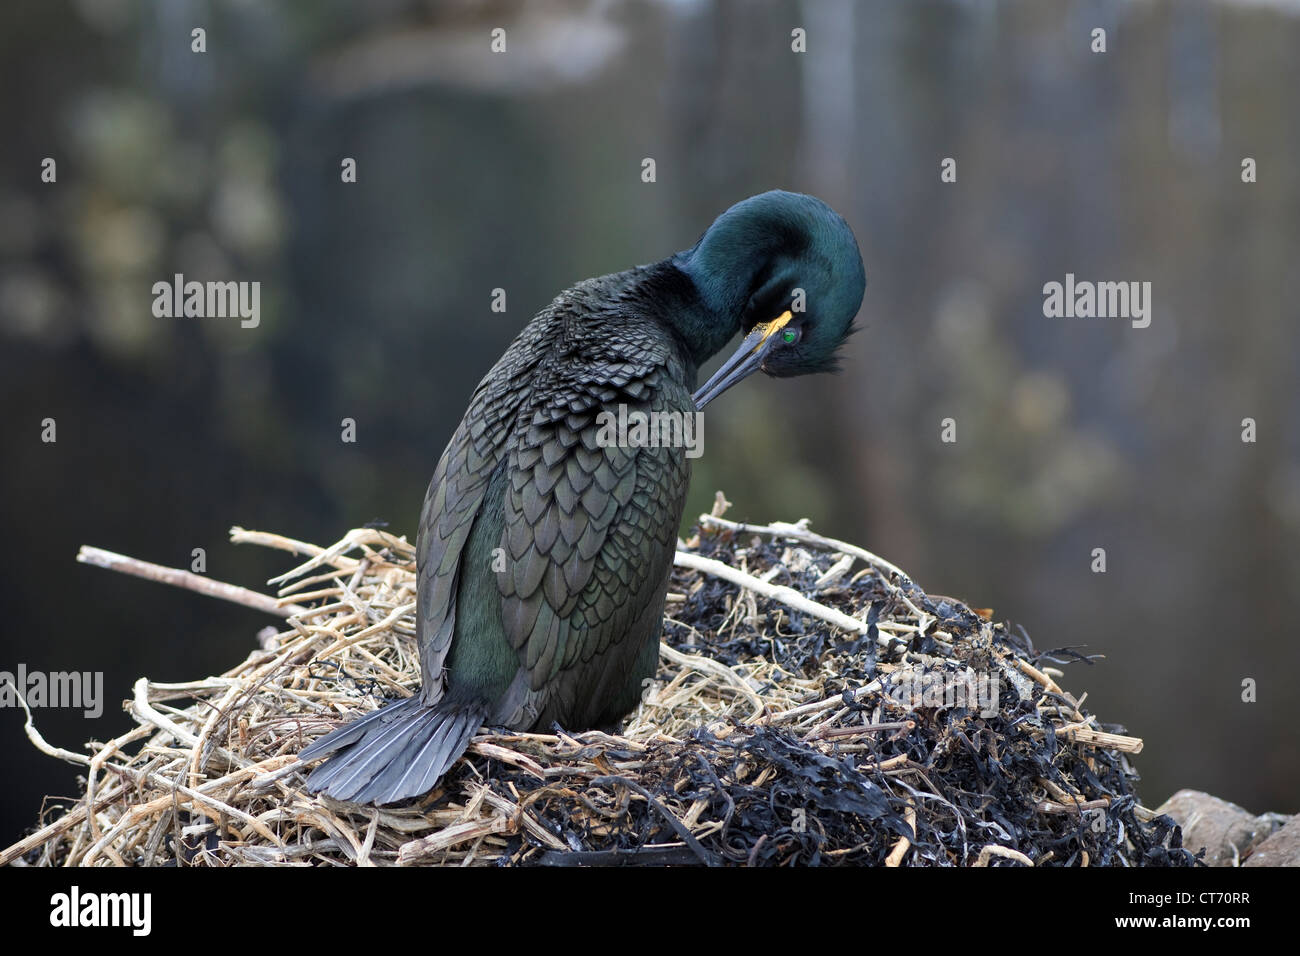 Adult shag preening and standing on a nest, Farne island, UK, Northumberland, England - Stock Image